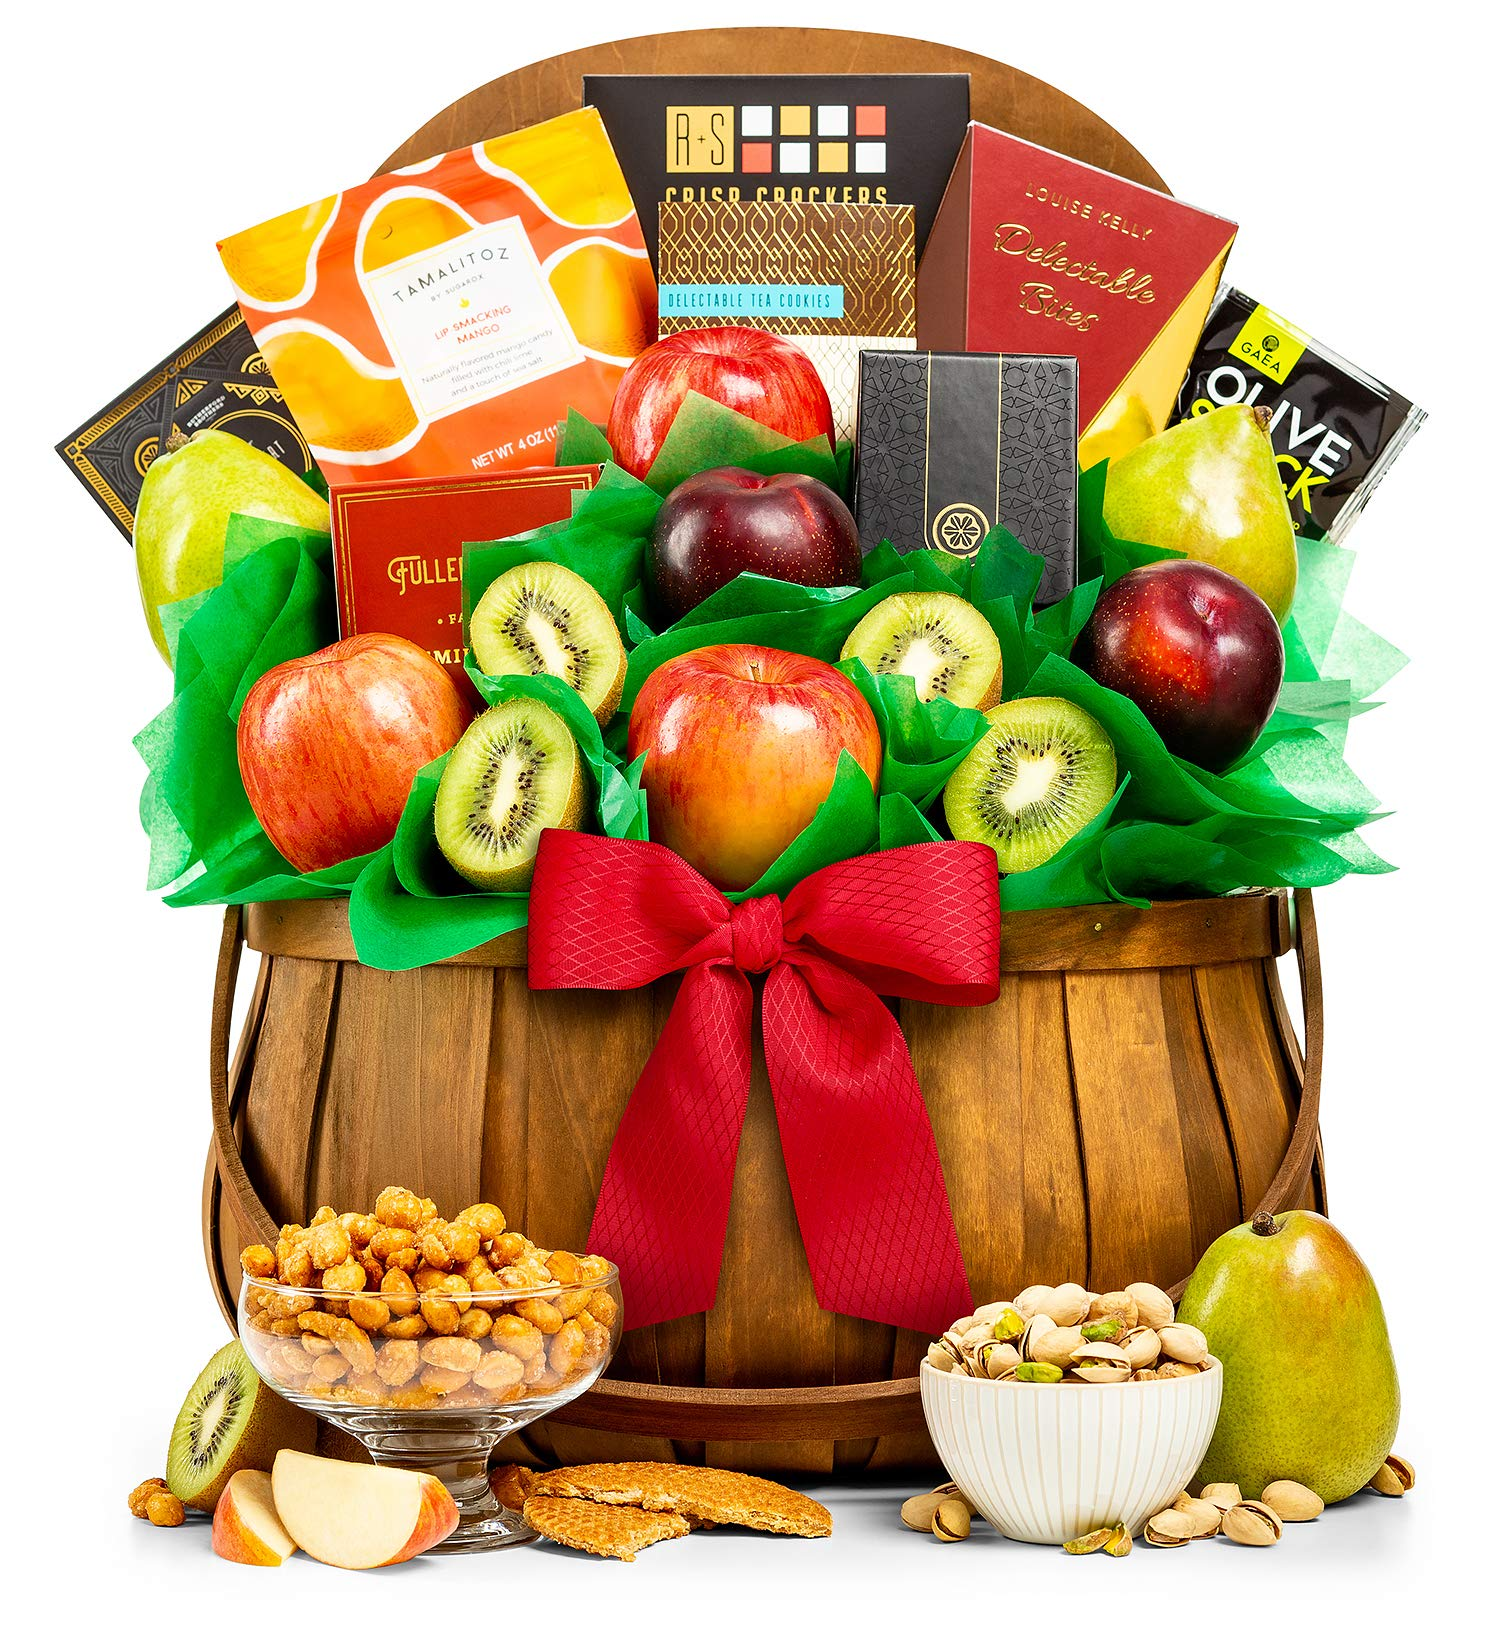 GiftTree Orchard Harvest Nuts and Fresh Fruit Basket | Gift-Grade Pears, Apples, Kiwis and Plums | Reusable Barrel Picnic Basket | Perfect Gift for Holidays, Christmas, Thank You